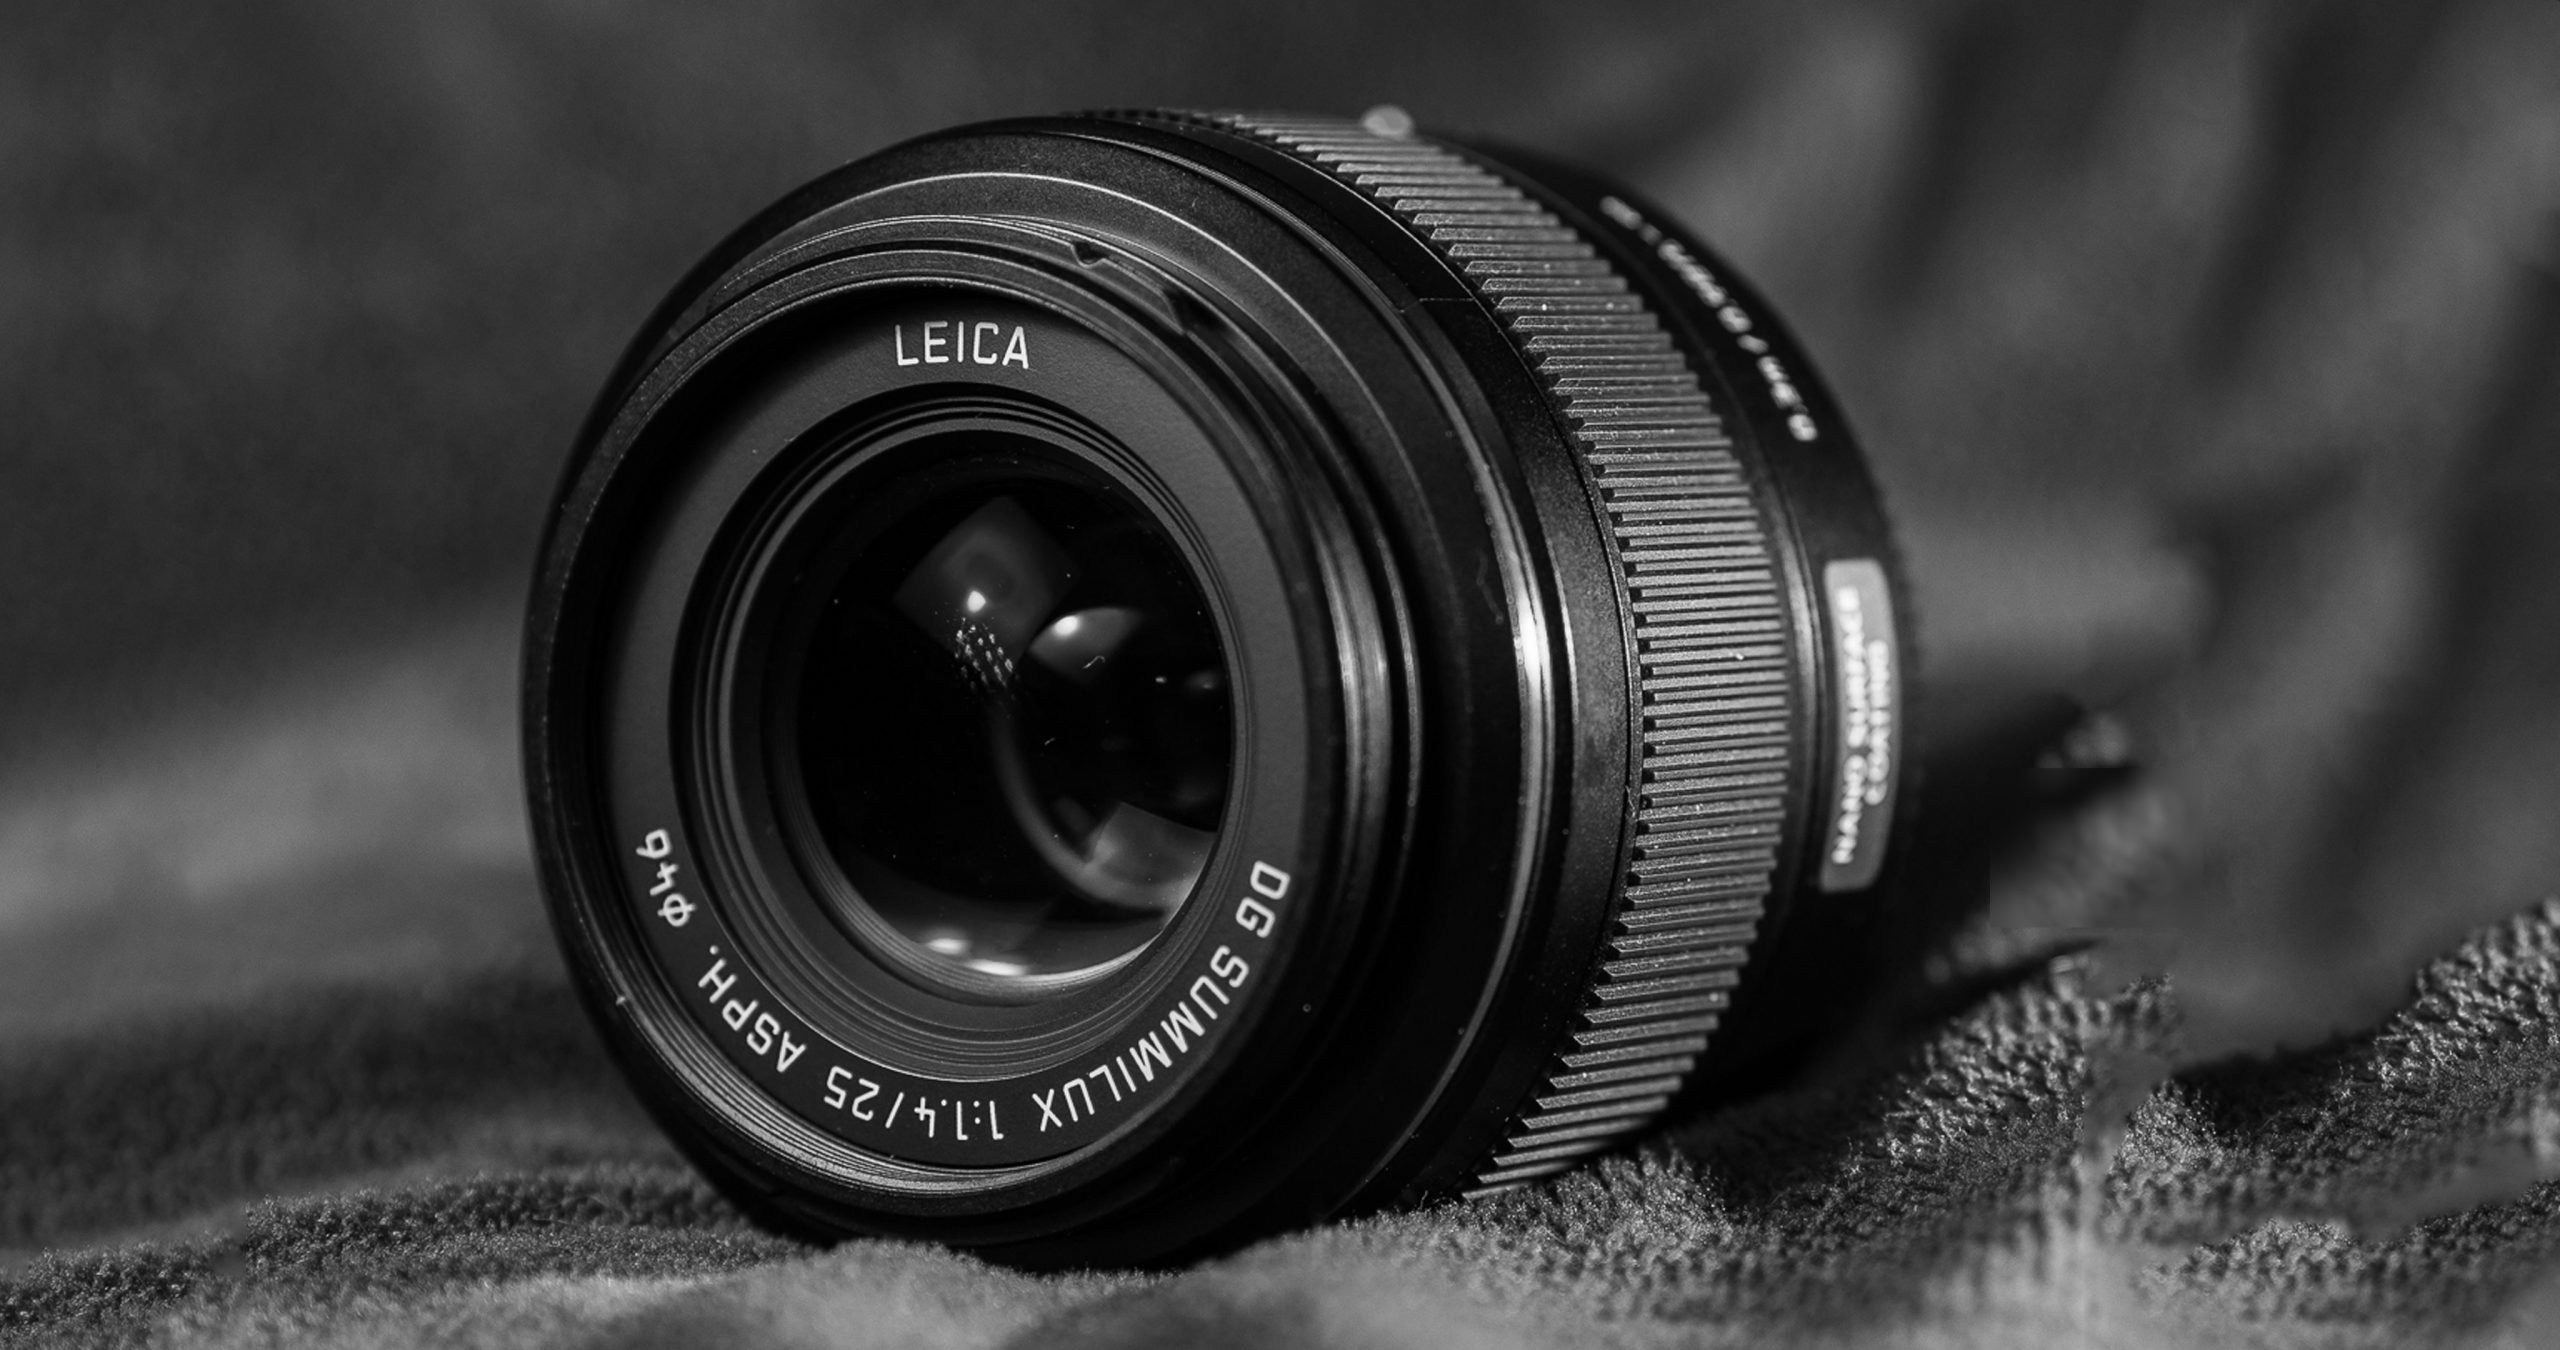 Leica Lens Care - How to care for your lenses - How to clean lenses - Leica Review